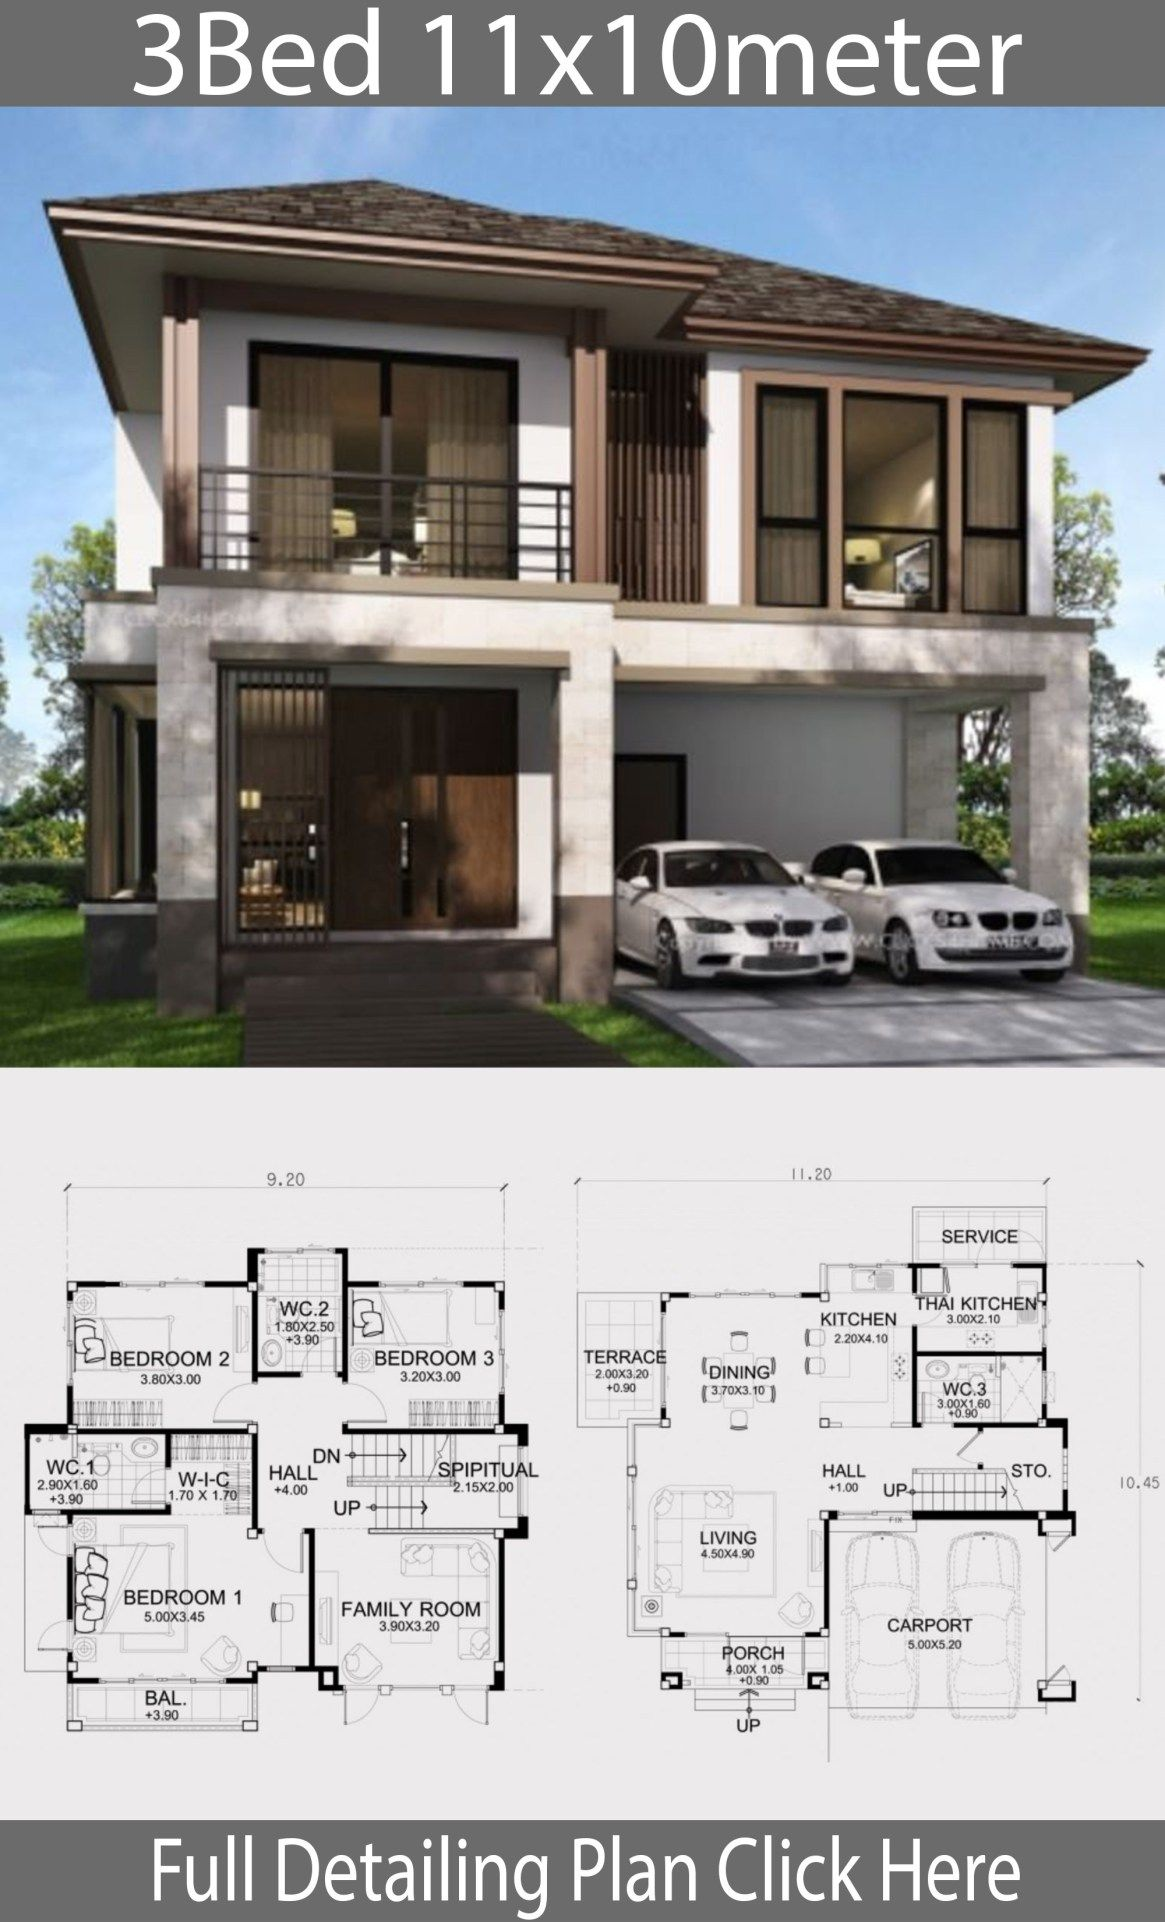 Home Design Plan 11x10m With 3 Bedrooms Home Design With Plansearch Duplex House Design Model House Plan Design Your Dream House